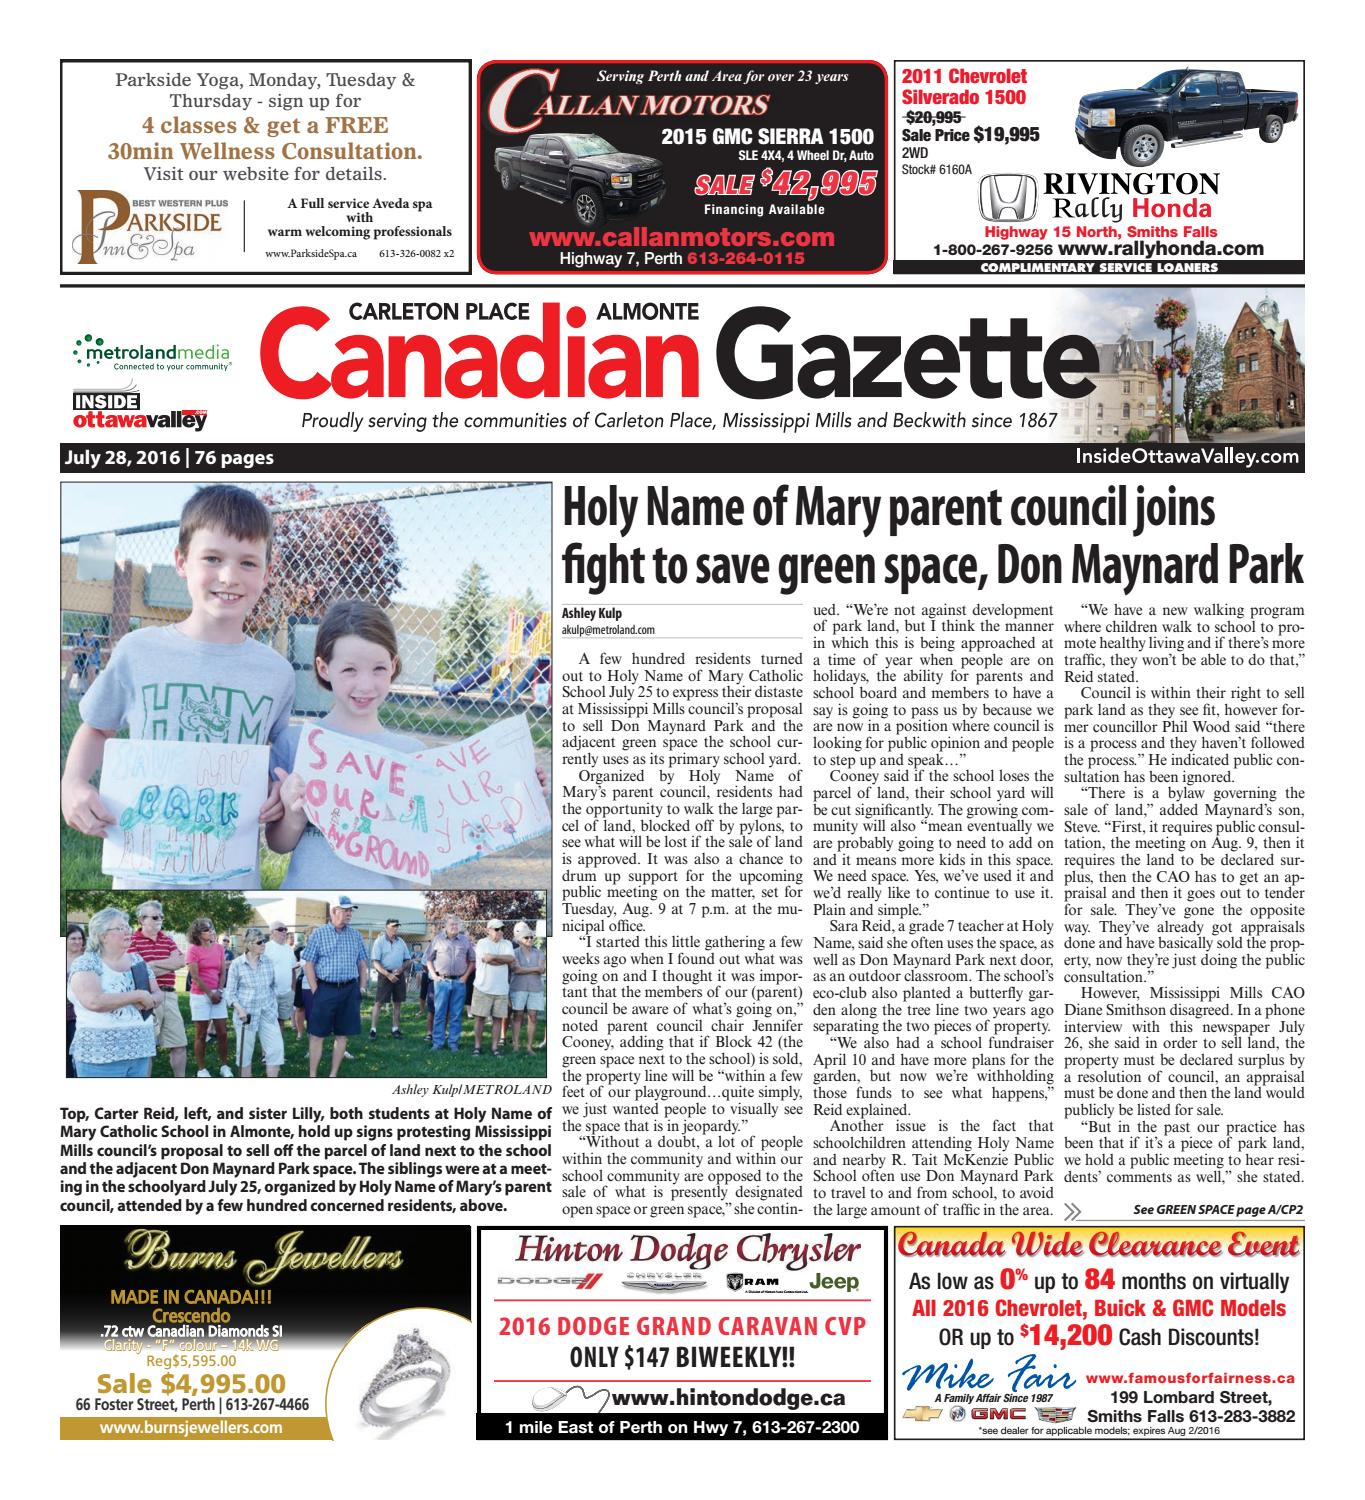 Almontecarletonplace072816 by metroland east almonte carleton almontecarletonplace072816 by metroland east almonte carleton place canadian gazette issuu fandeluxe Gallery